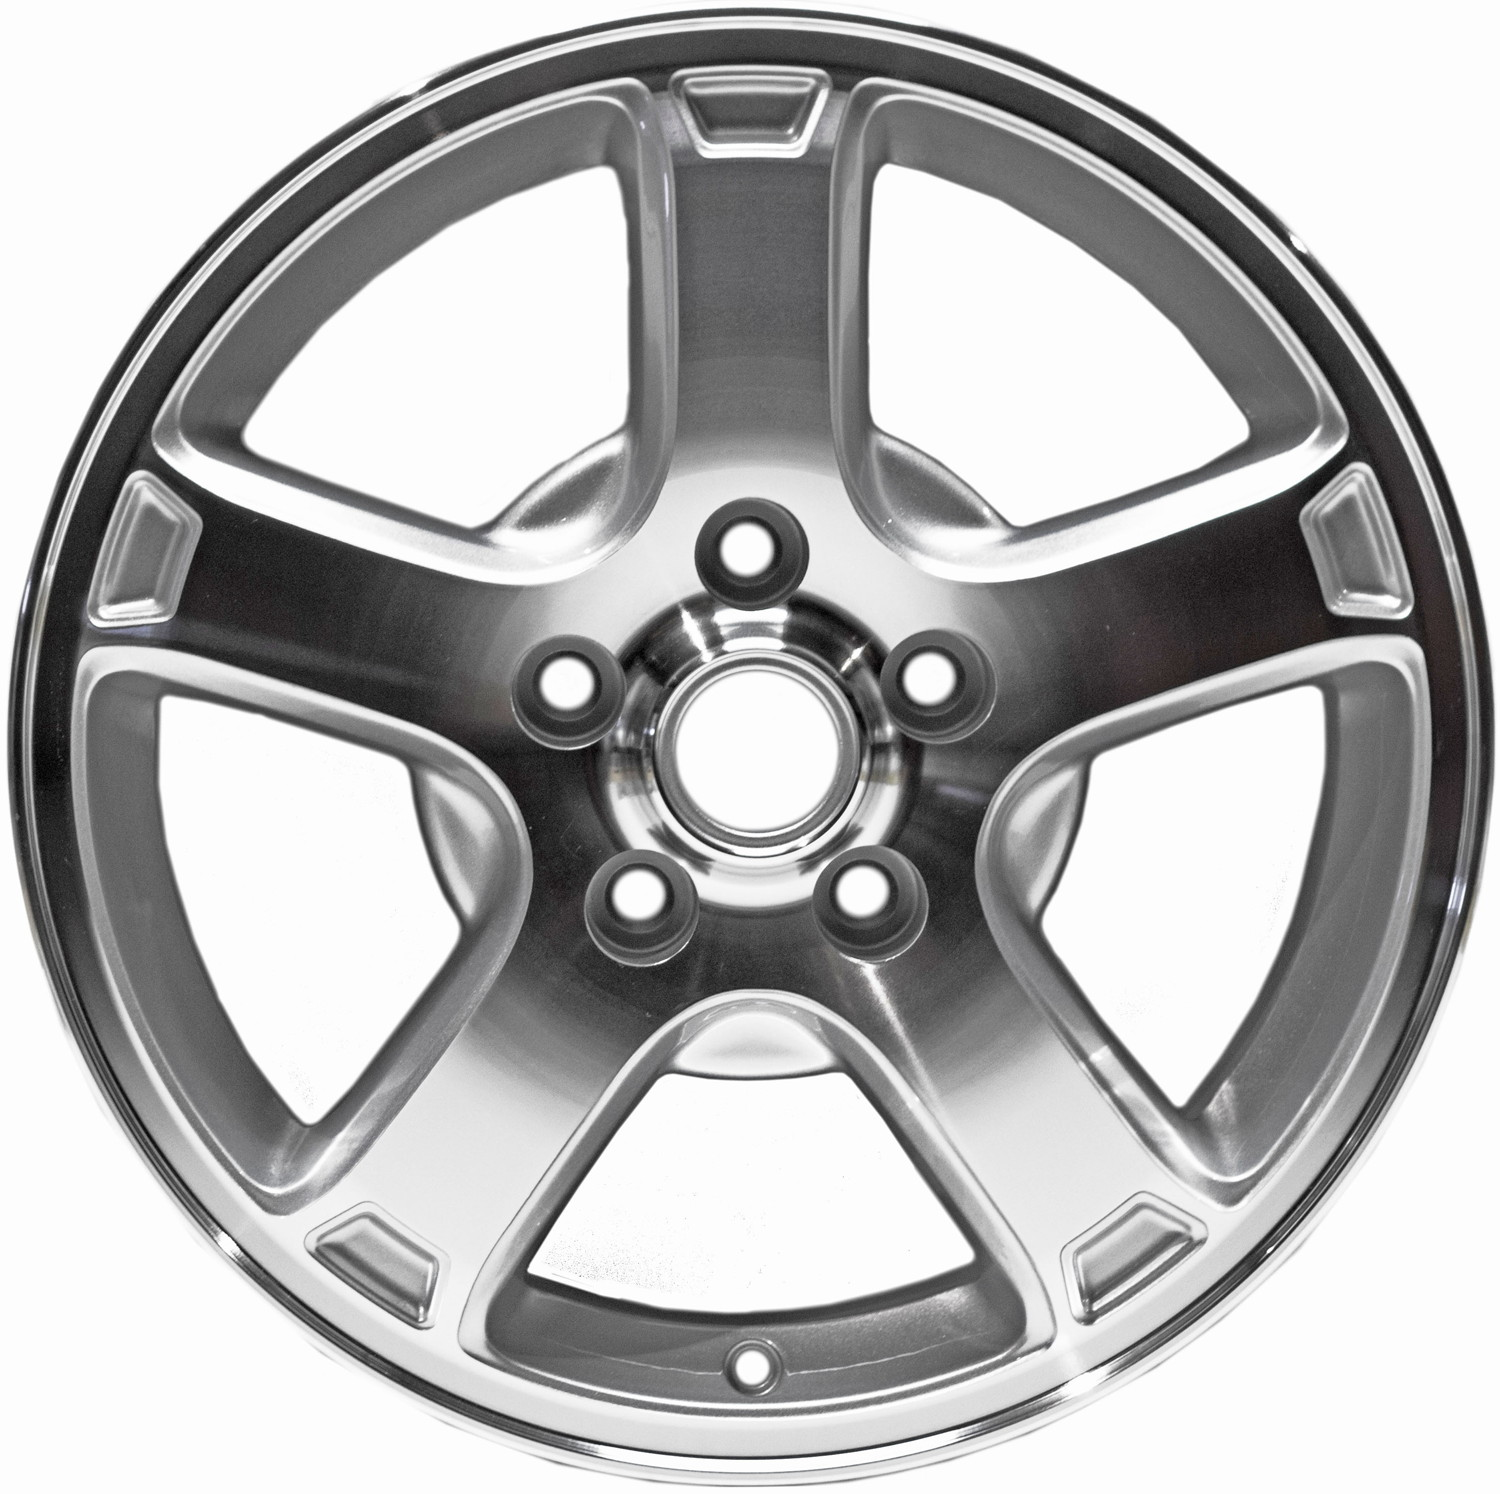 2004 chevrolet impala wheel autopartskart 1998 Impala SS 2004 chevrolet impala wheel rb 939 740